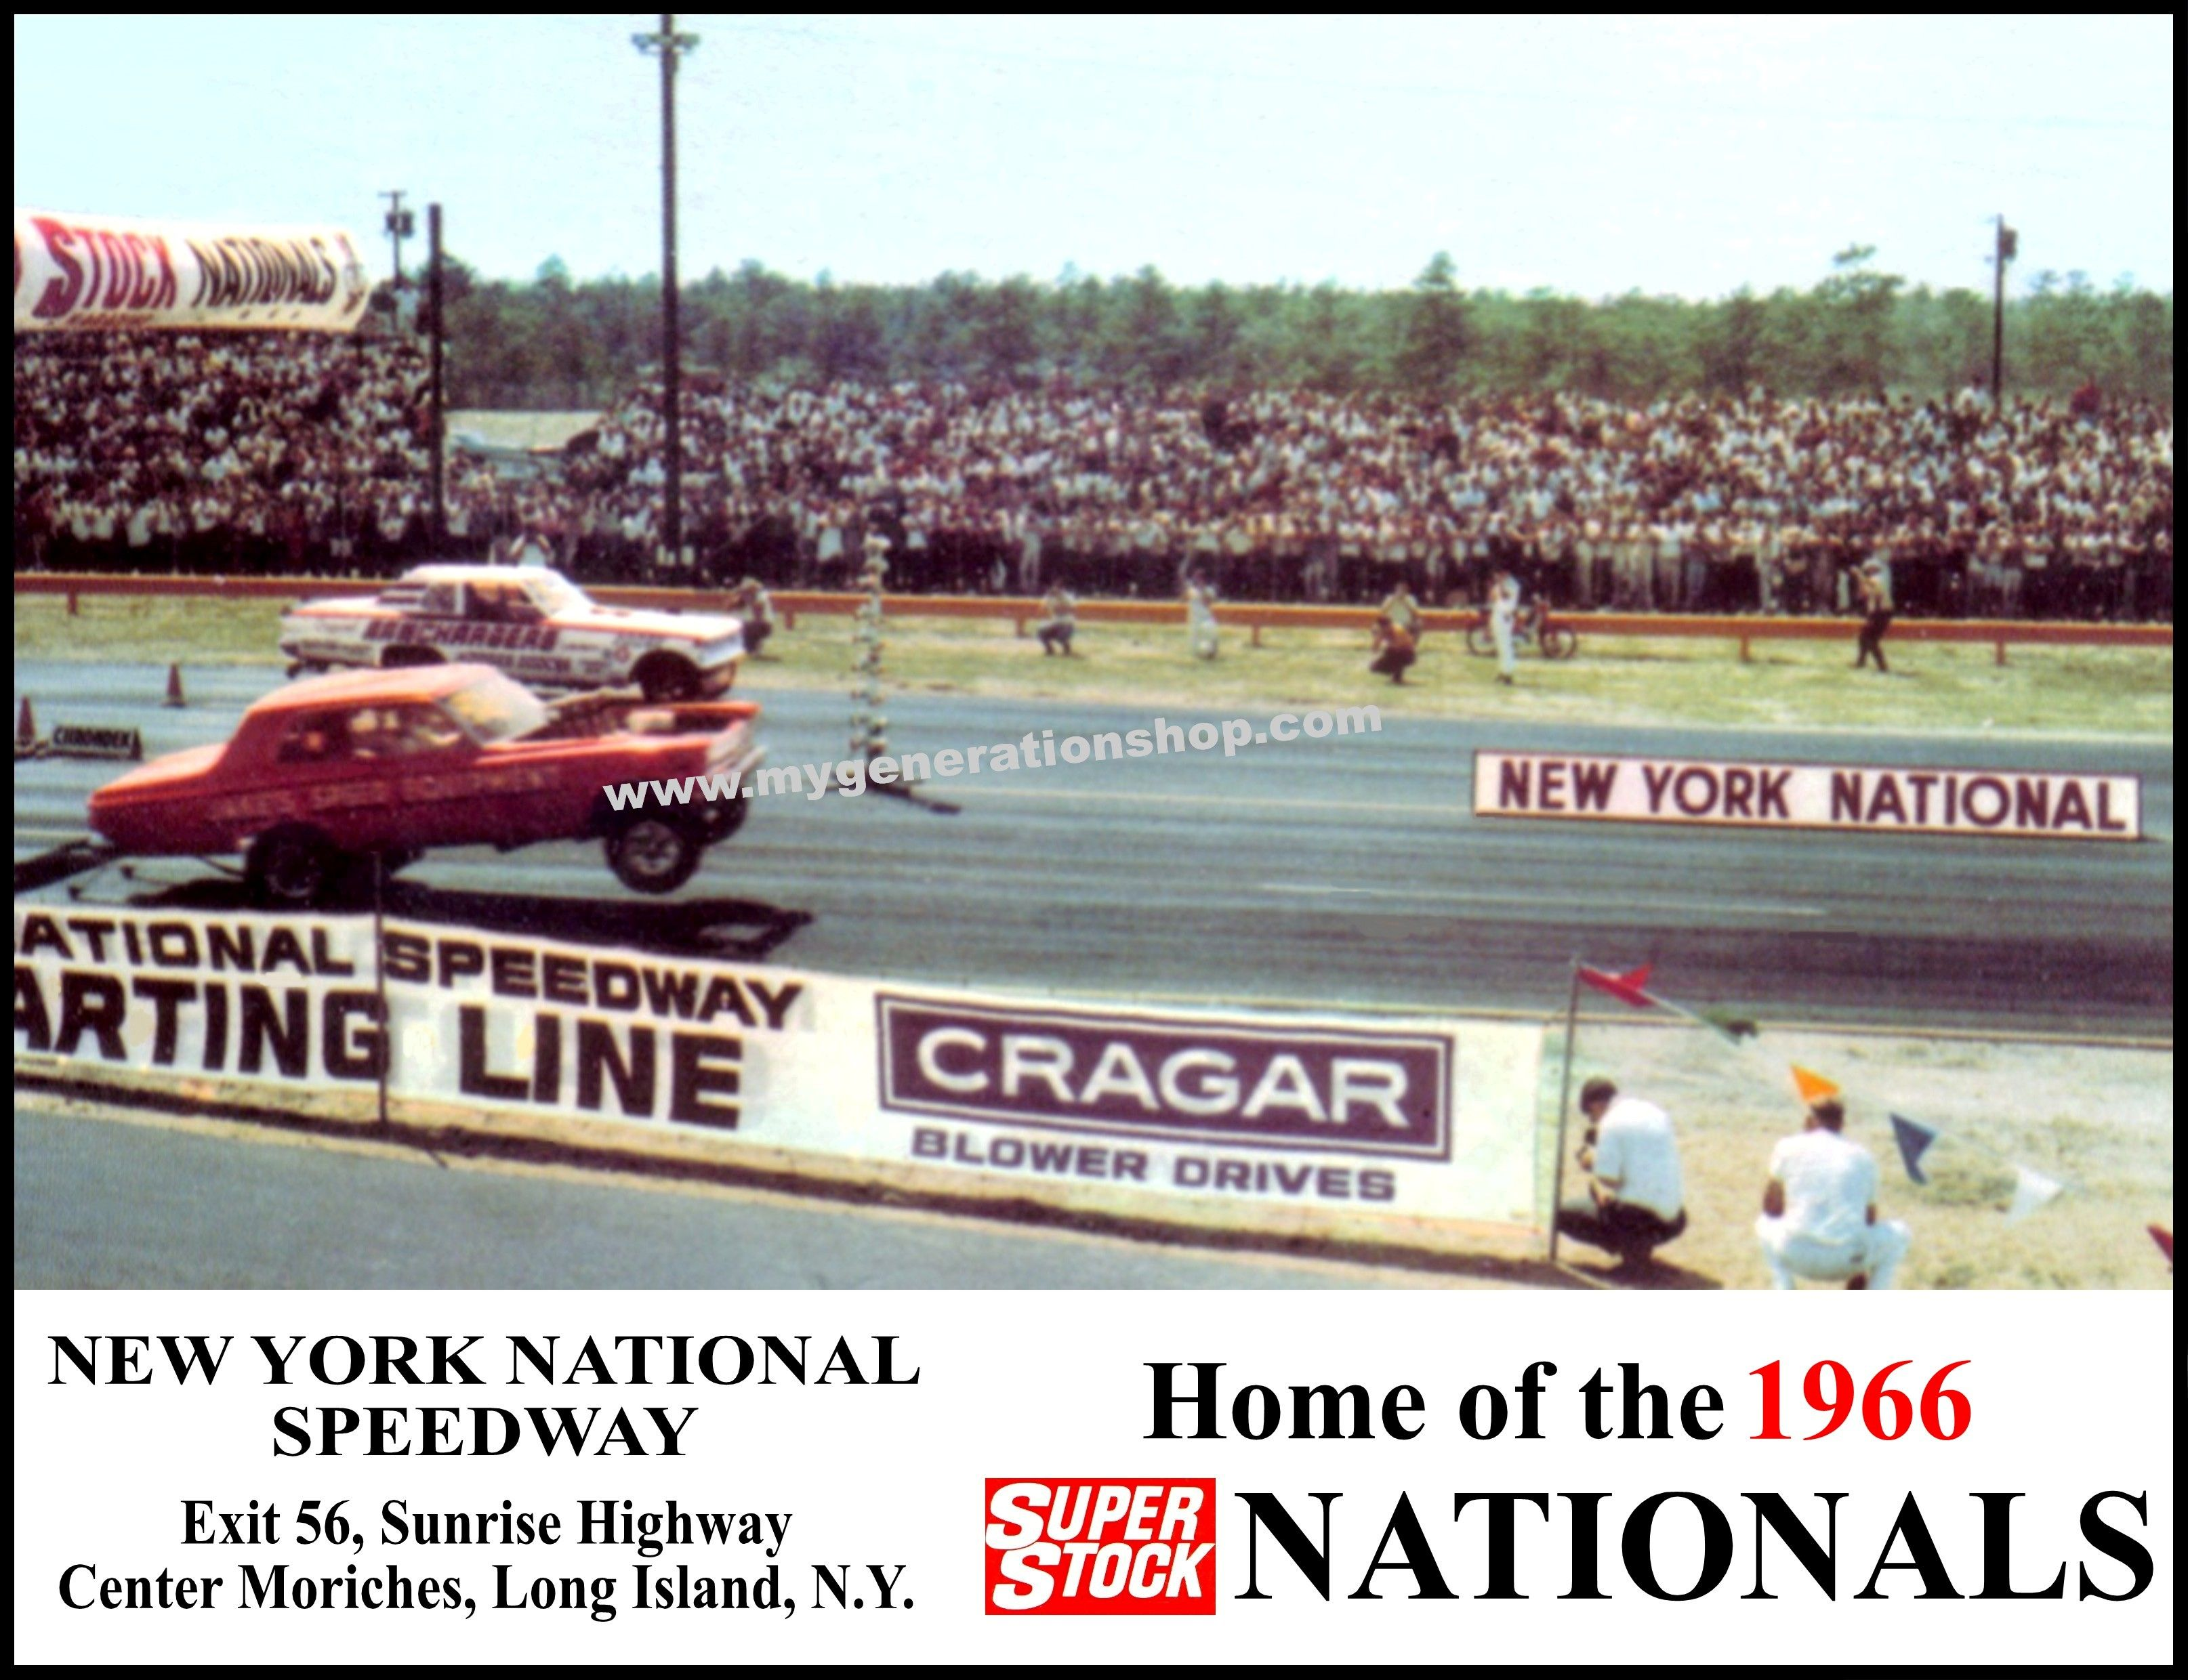 1966 Super Stock Nationals At New York National Speedway Drag Racing Speedway Racing